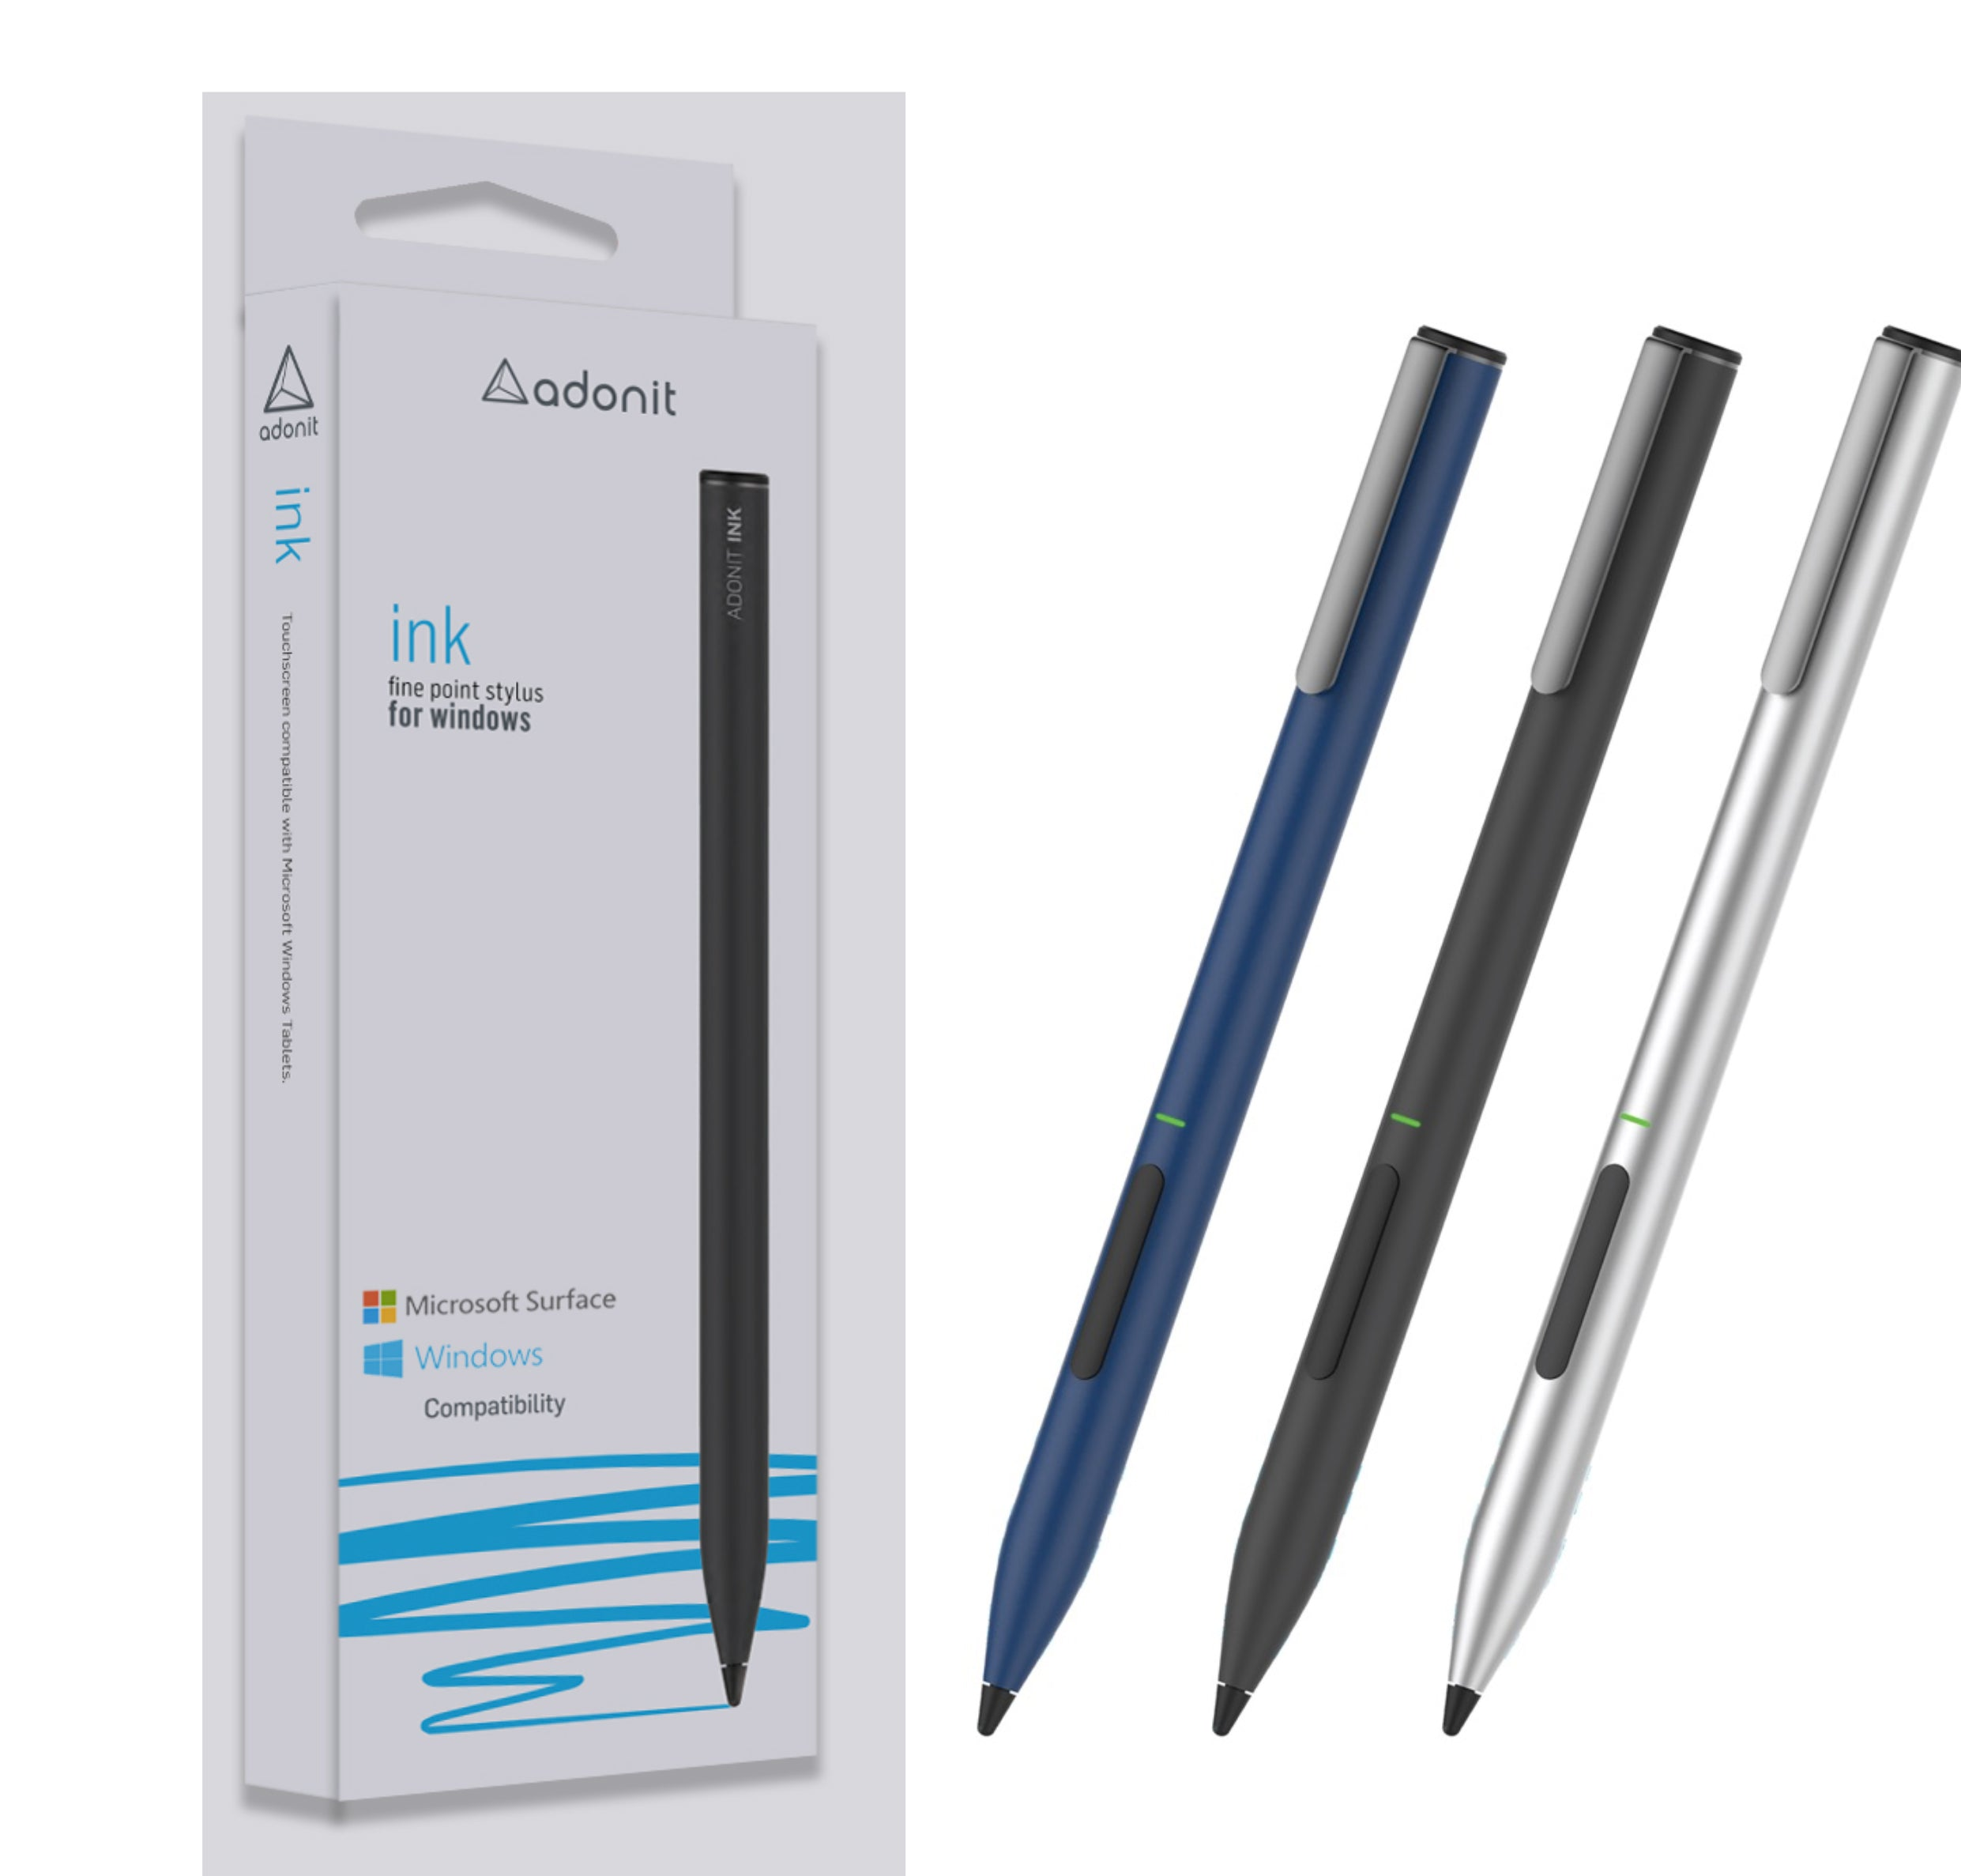 Adonit Ink - Fine Point Precision Stylus for Microsoft Surface and Windows Touchscreens